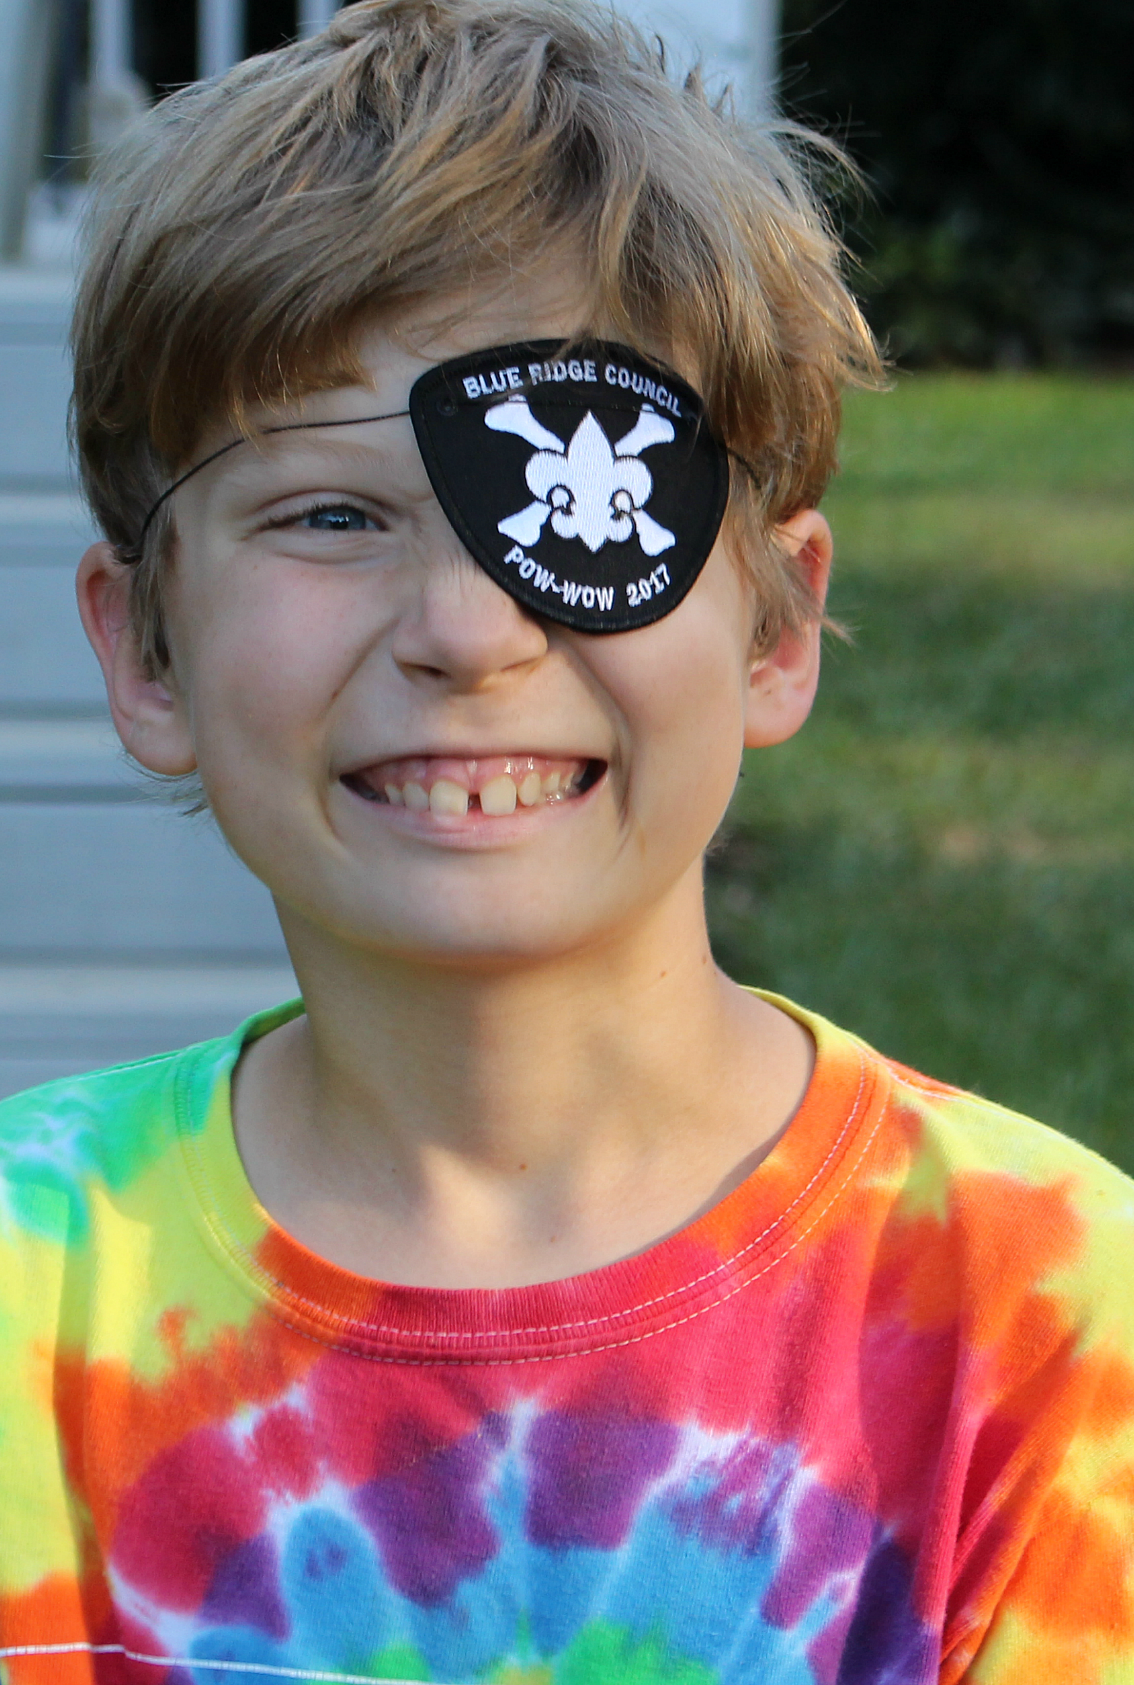 Why Did Pirates Wear Eye Patches Experiment - Out in the Sun